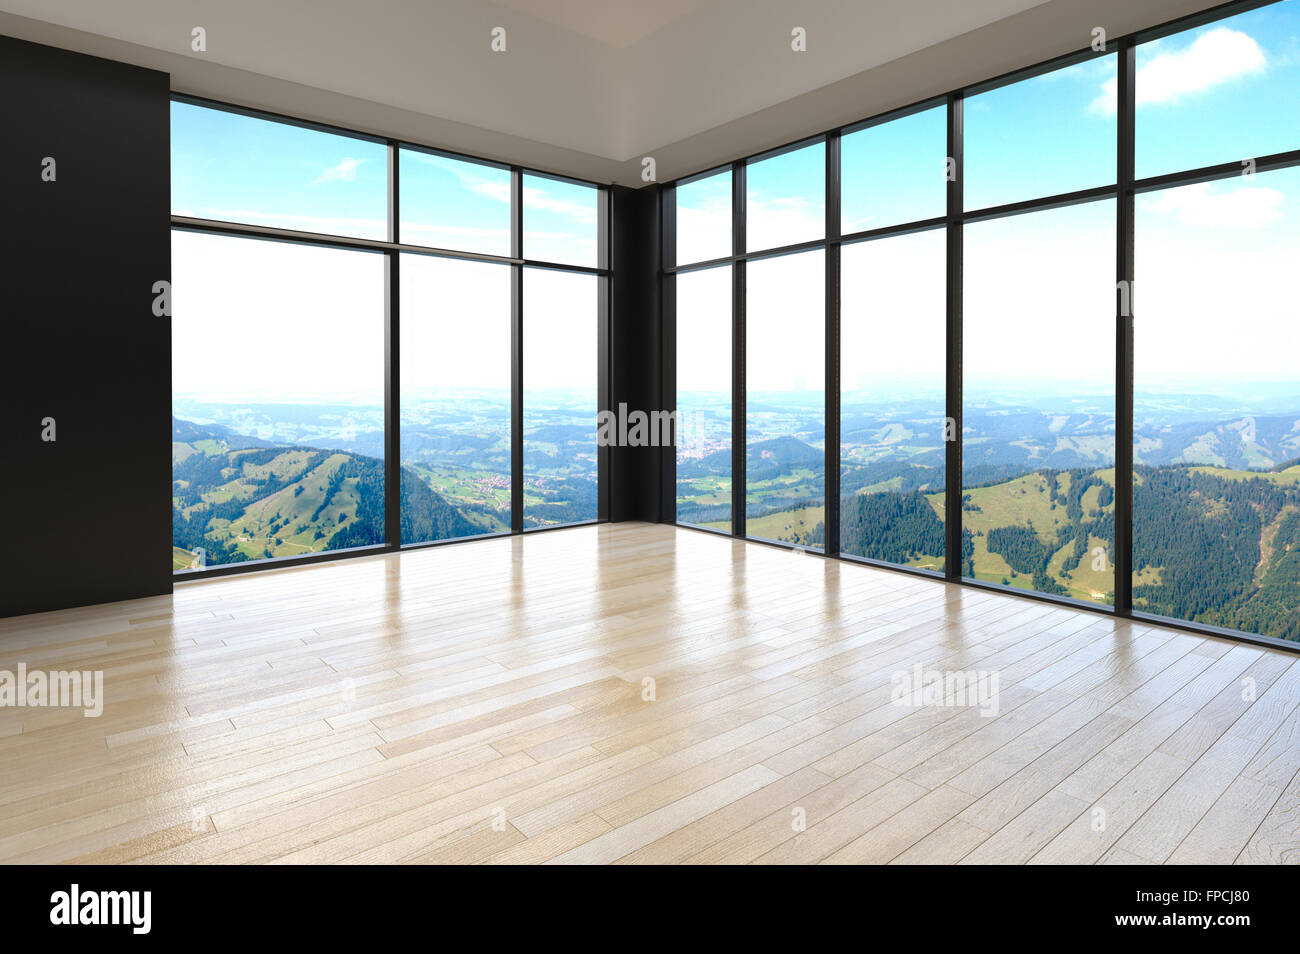 Corner View Of An Empty Living Room Interior Overlooking Mountains With  Floor To Ceiling Glass Windows Along Two Walls And A Natural Wood Parquet  Floor